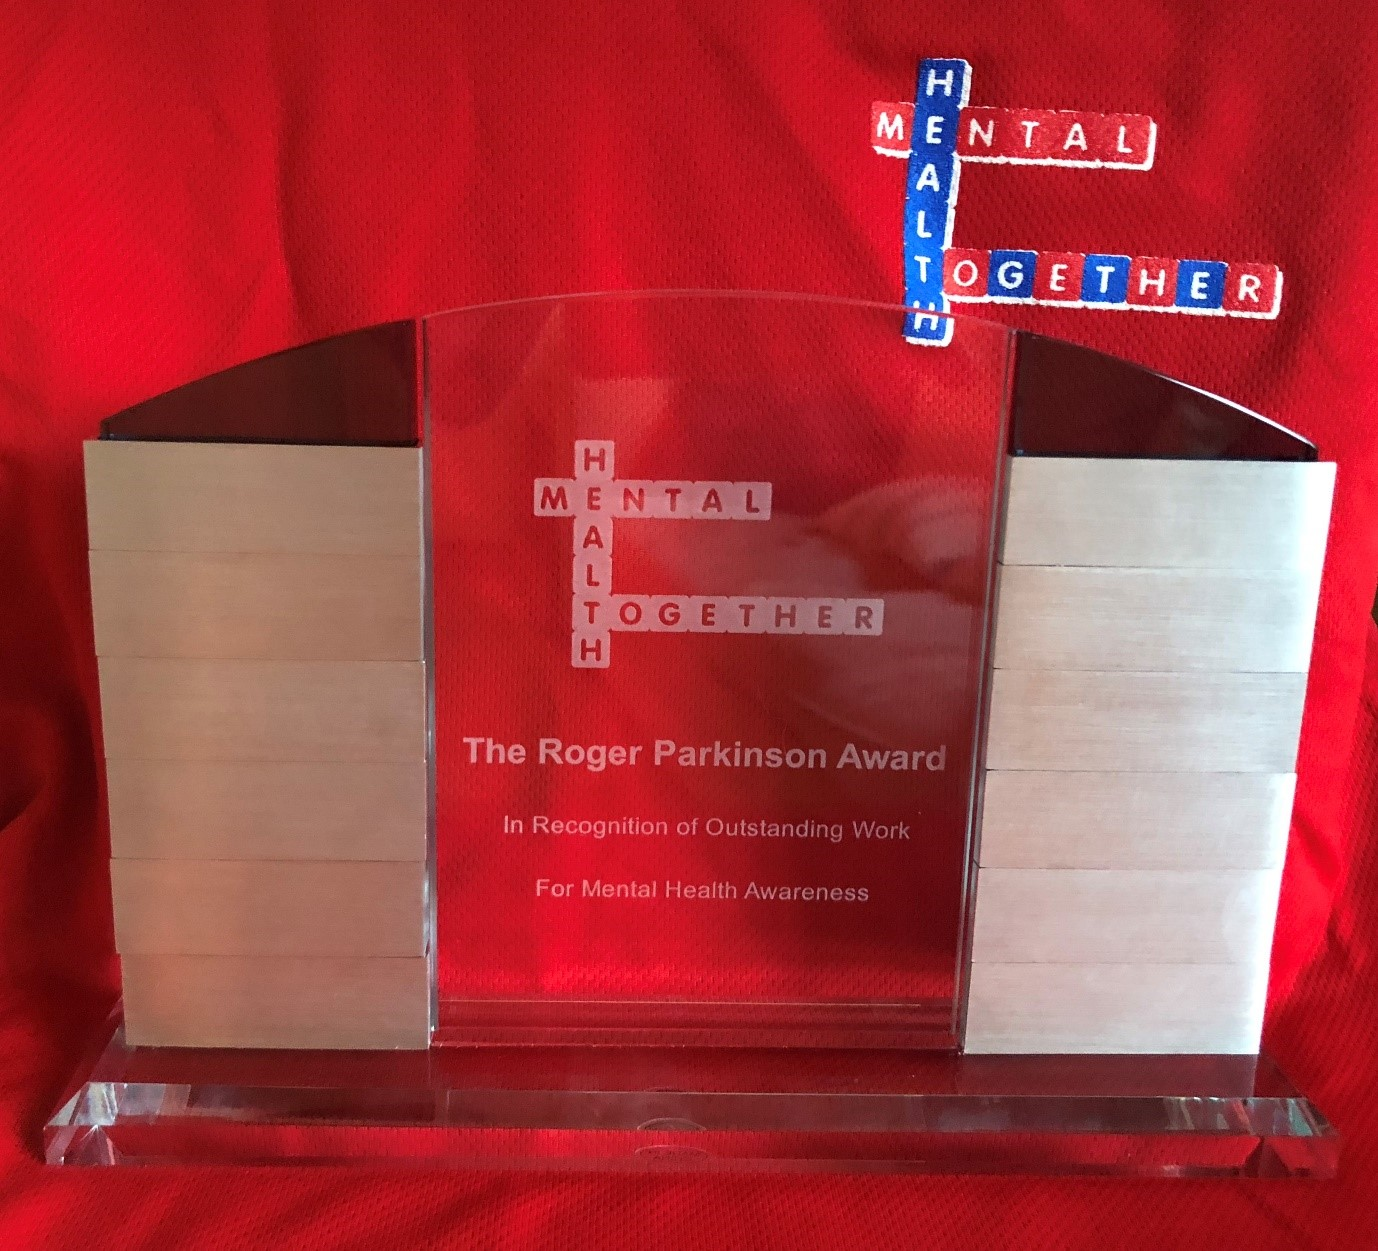 The Roger Parkinson Award